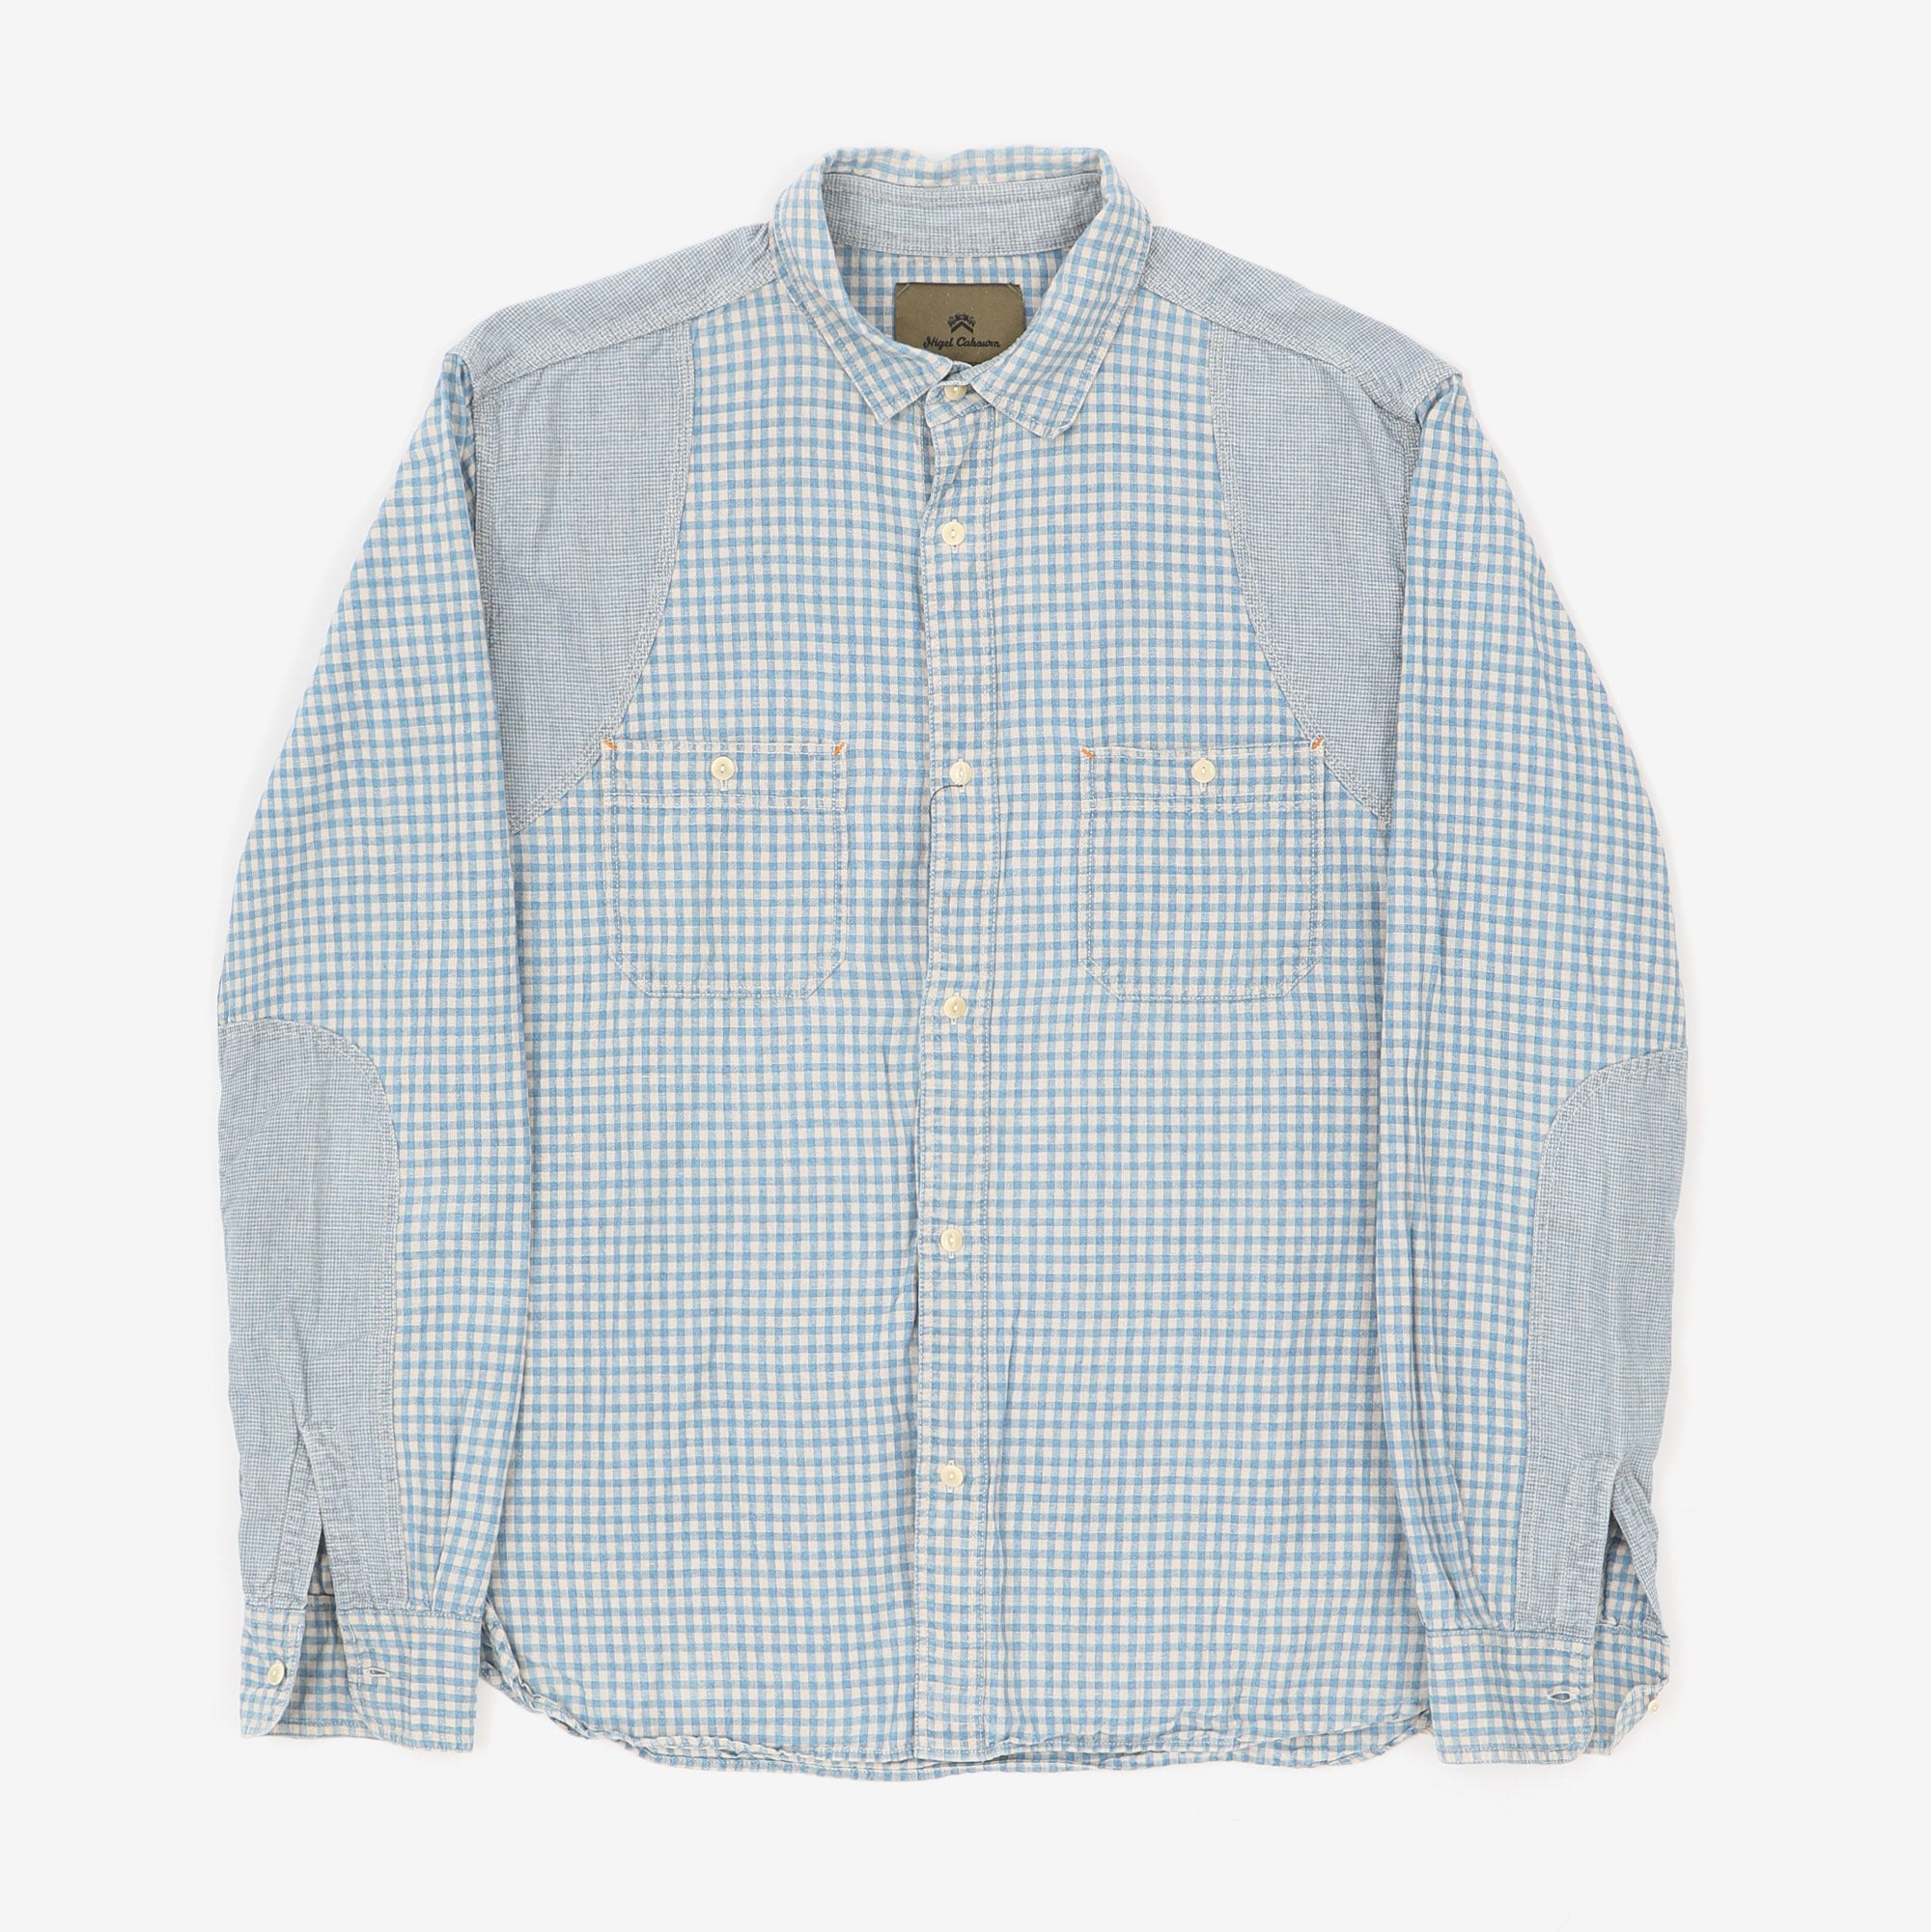 Patchwork Check Medical Shirt